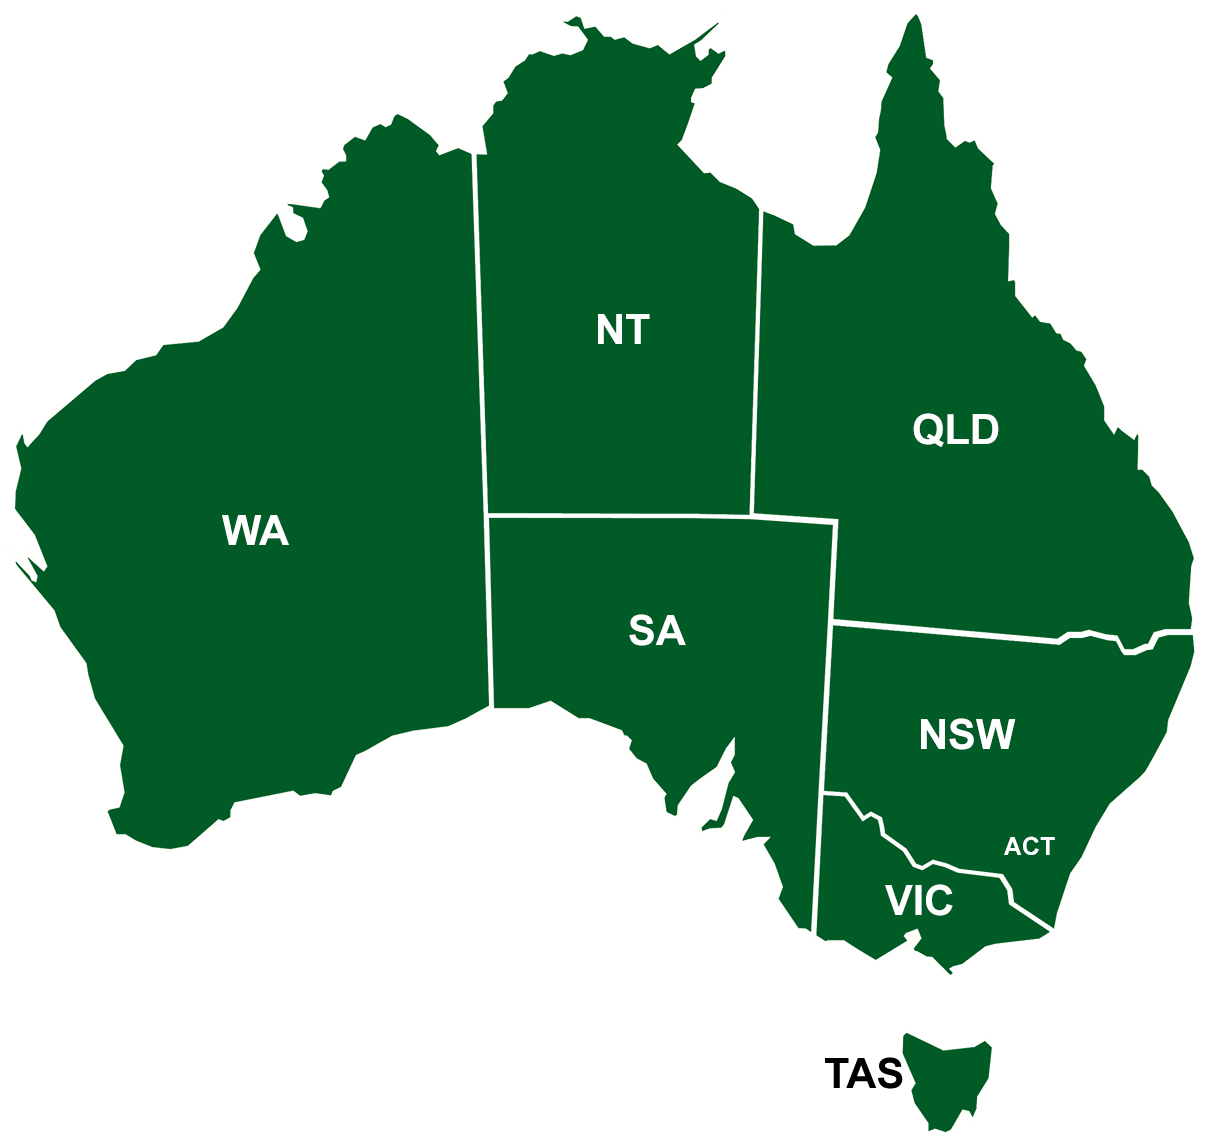 Australian State Map.Australia State Map Png 7 Png Image